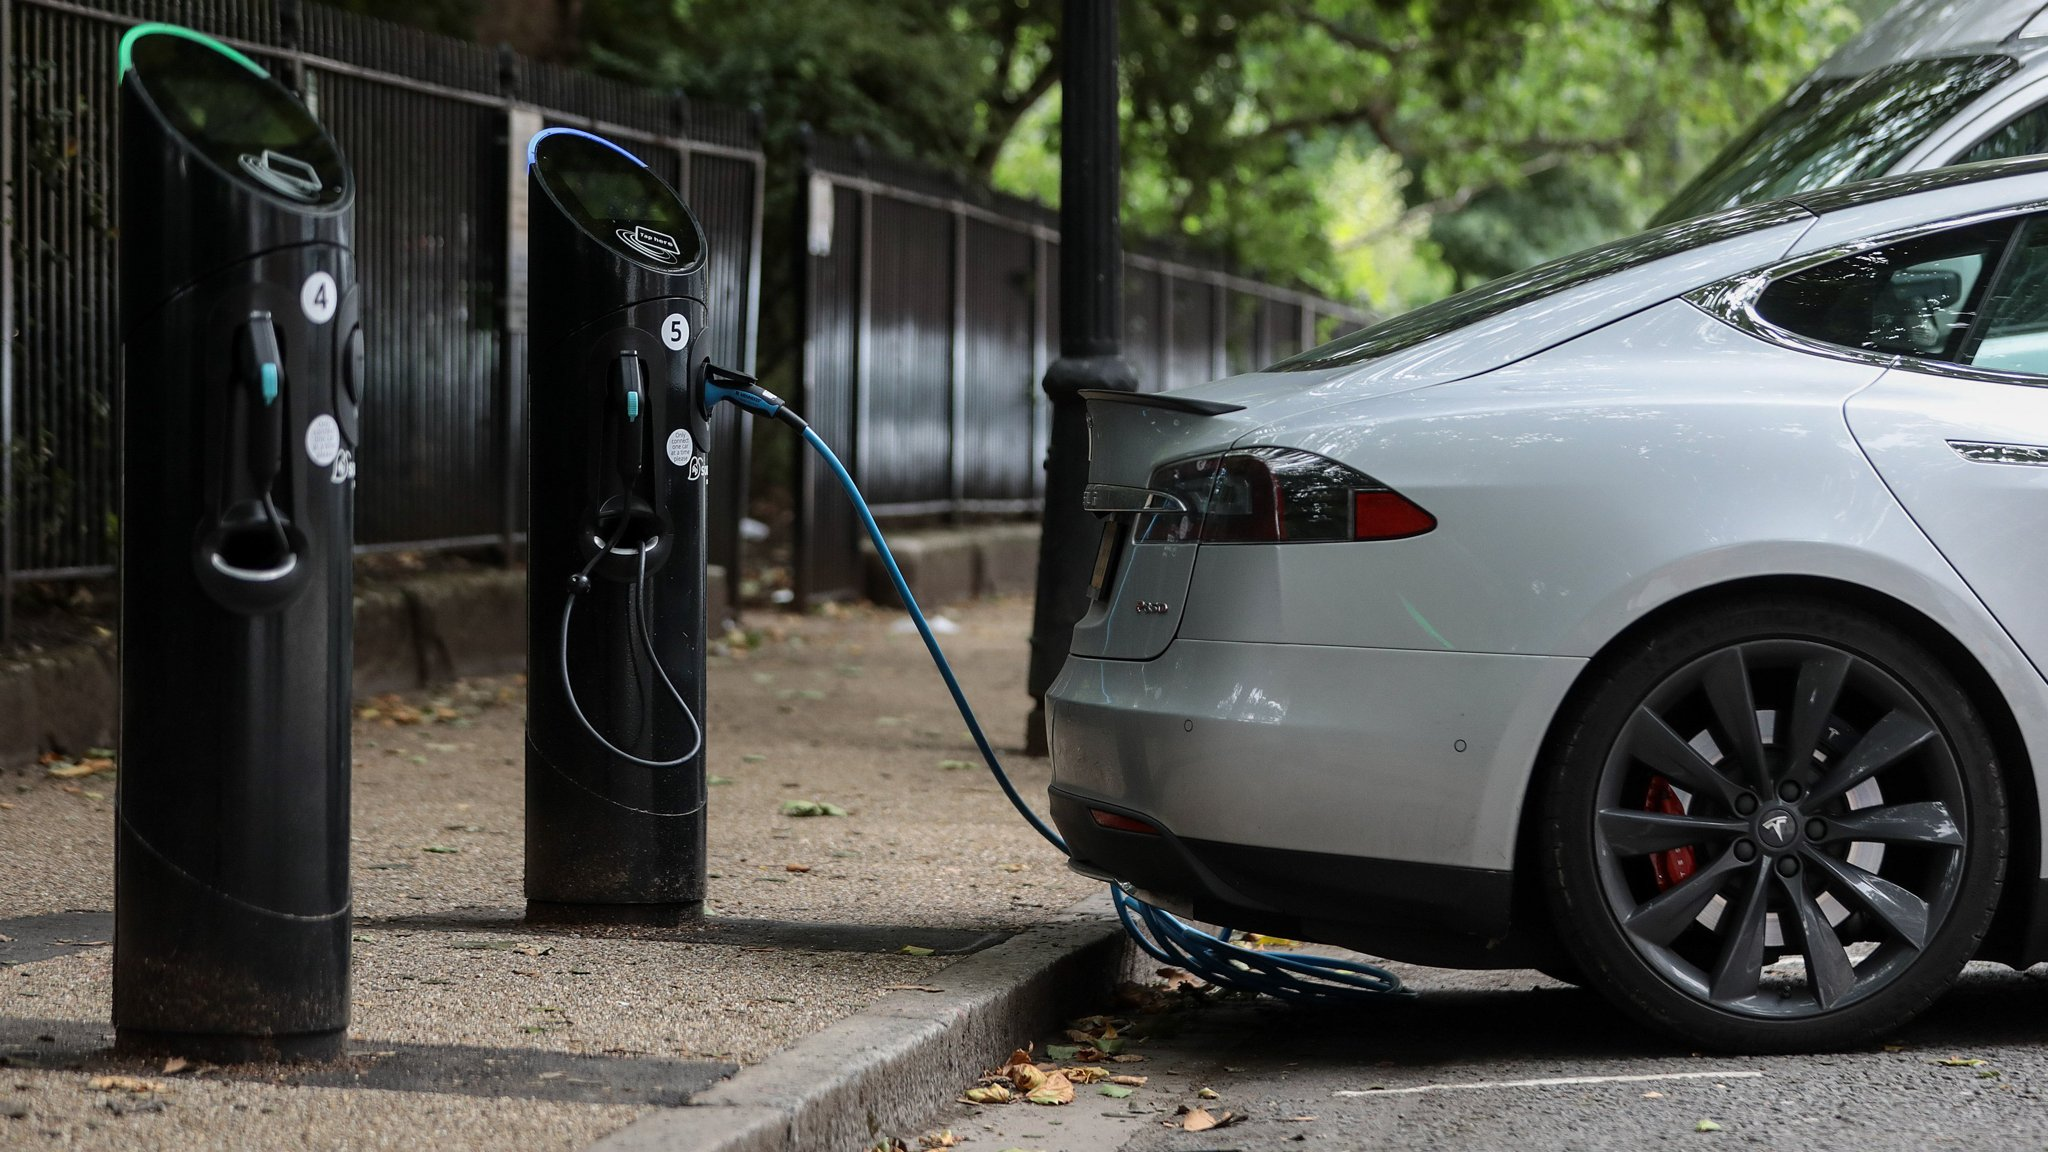 Charge electric car but don't boil kettle, says National ... on